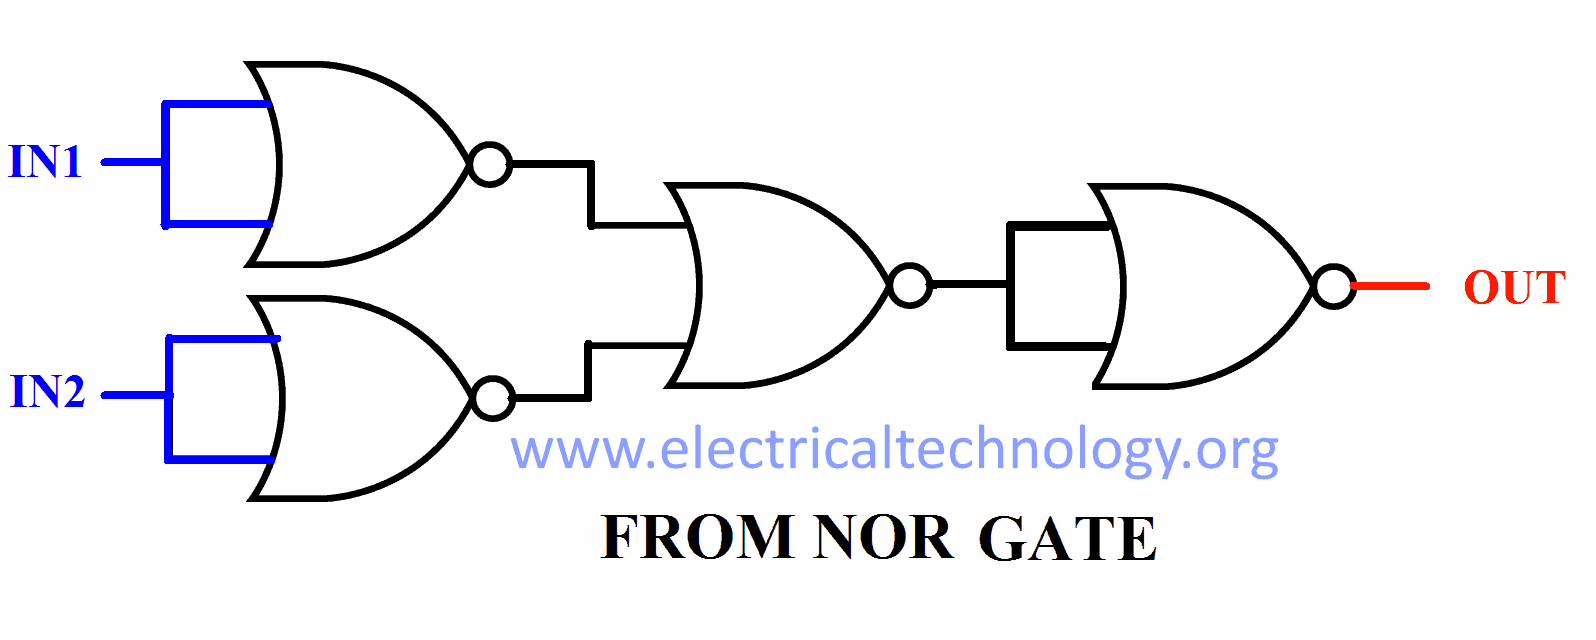 Digital Logic Nand Gate Universal Electrical Technology Diagram Using Only Gates Function From Nor